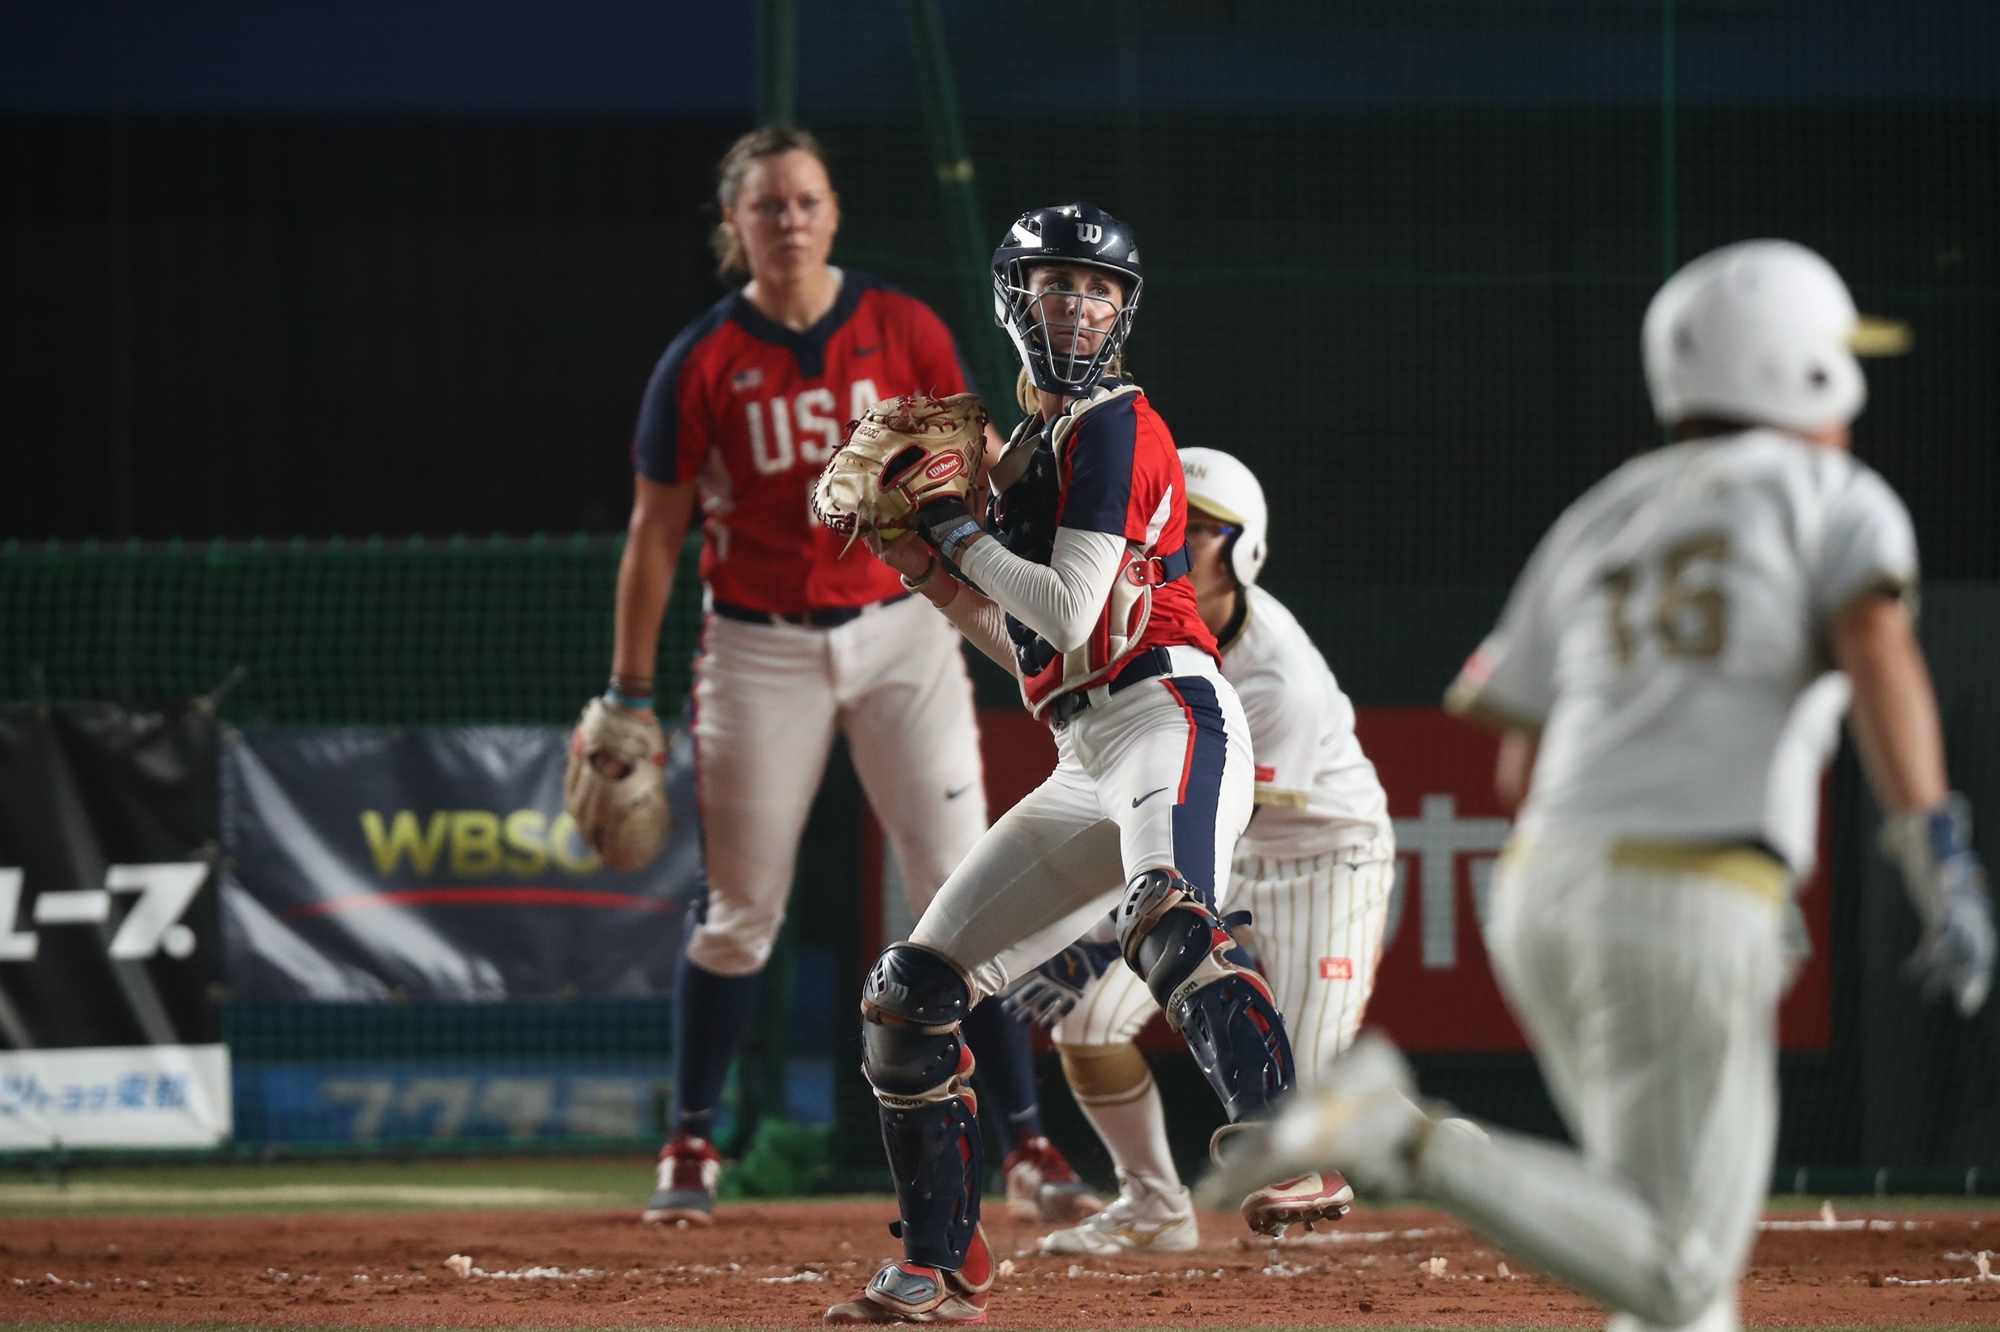 Aubree Munro, the USA catcher